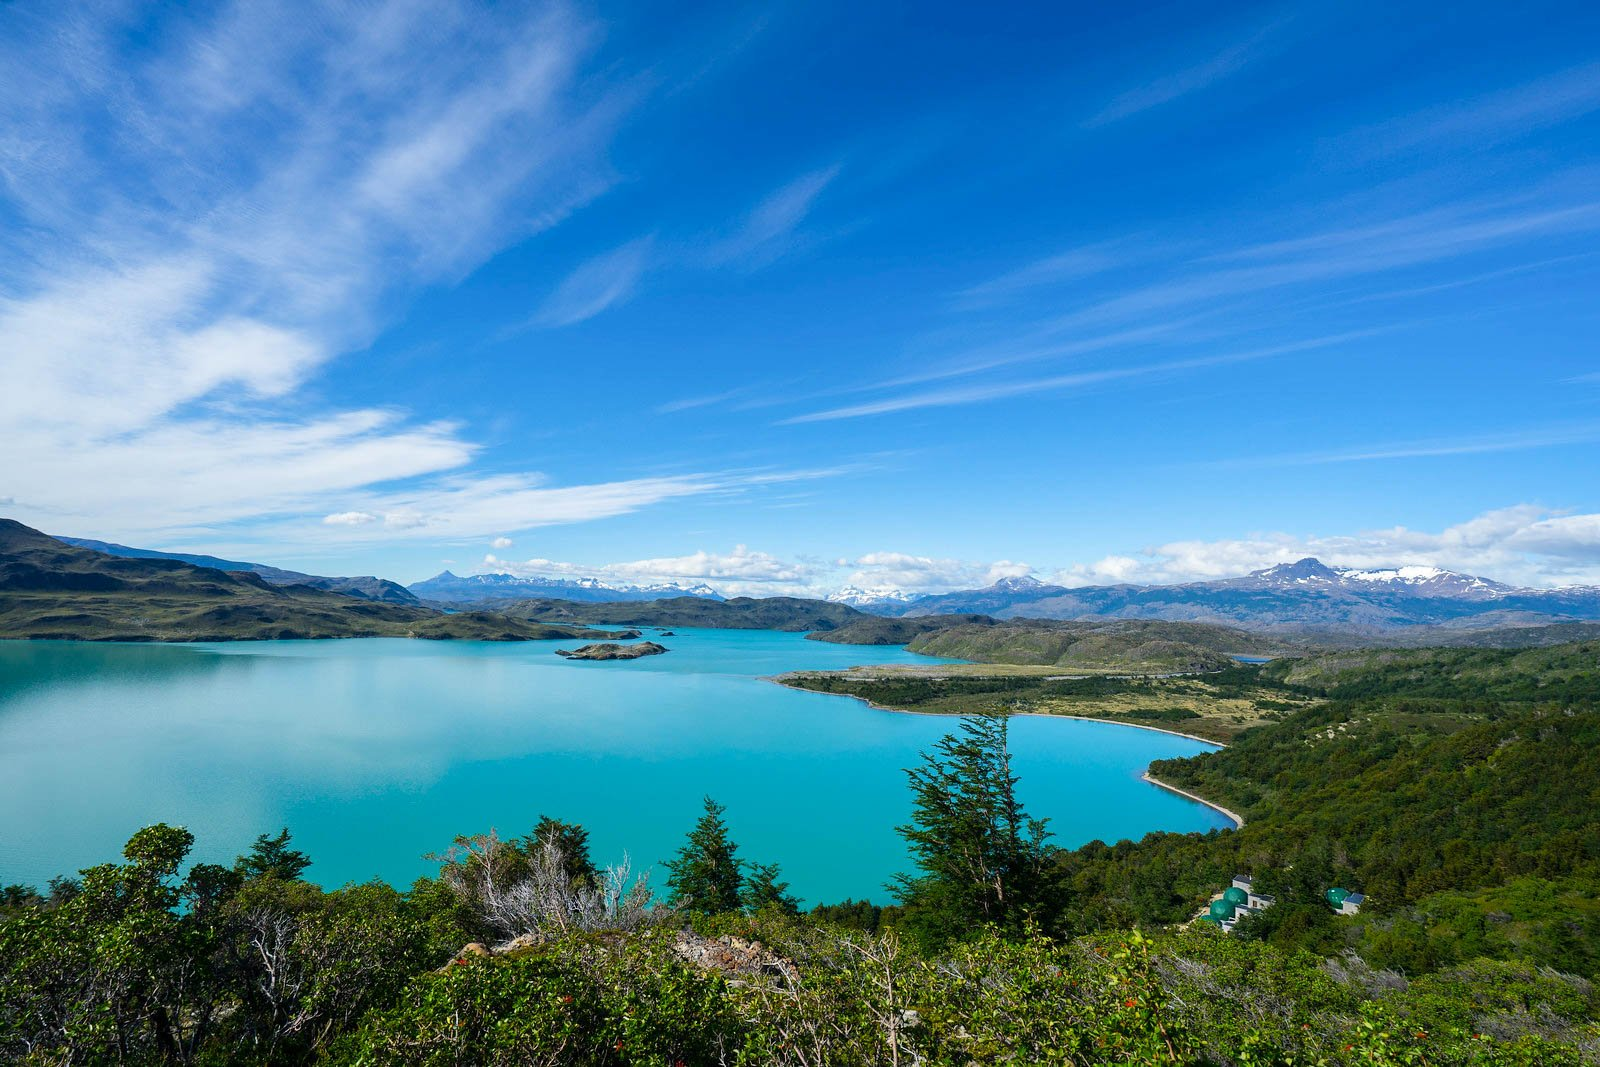 15 Places to Visit in Chile That Showcase Its Wild Beauty